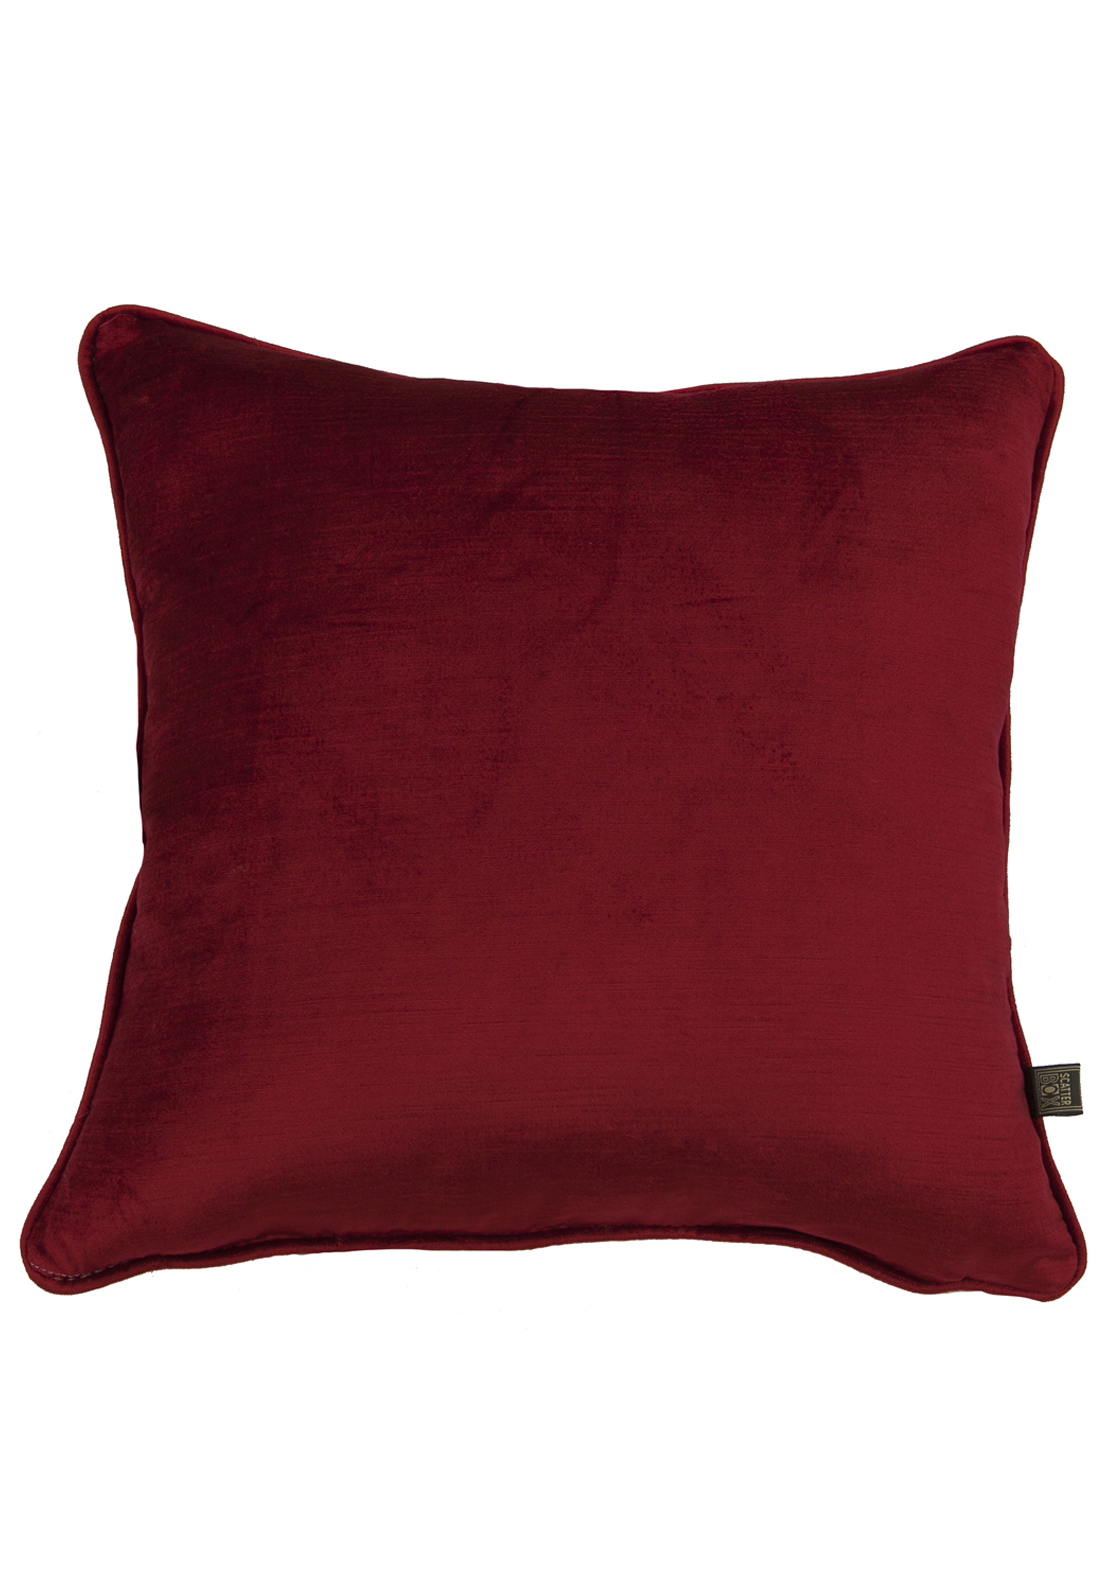 Scatterbox Velvet Sheen Filled Cushion, 45 x 45cm Red